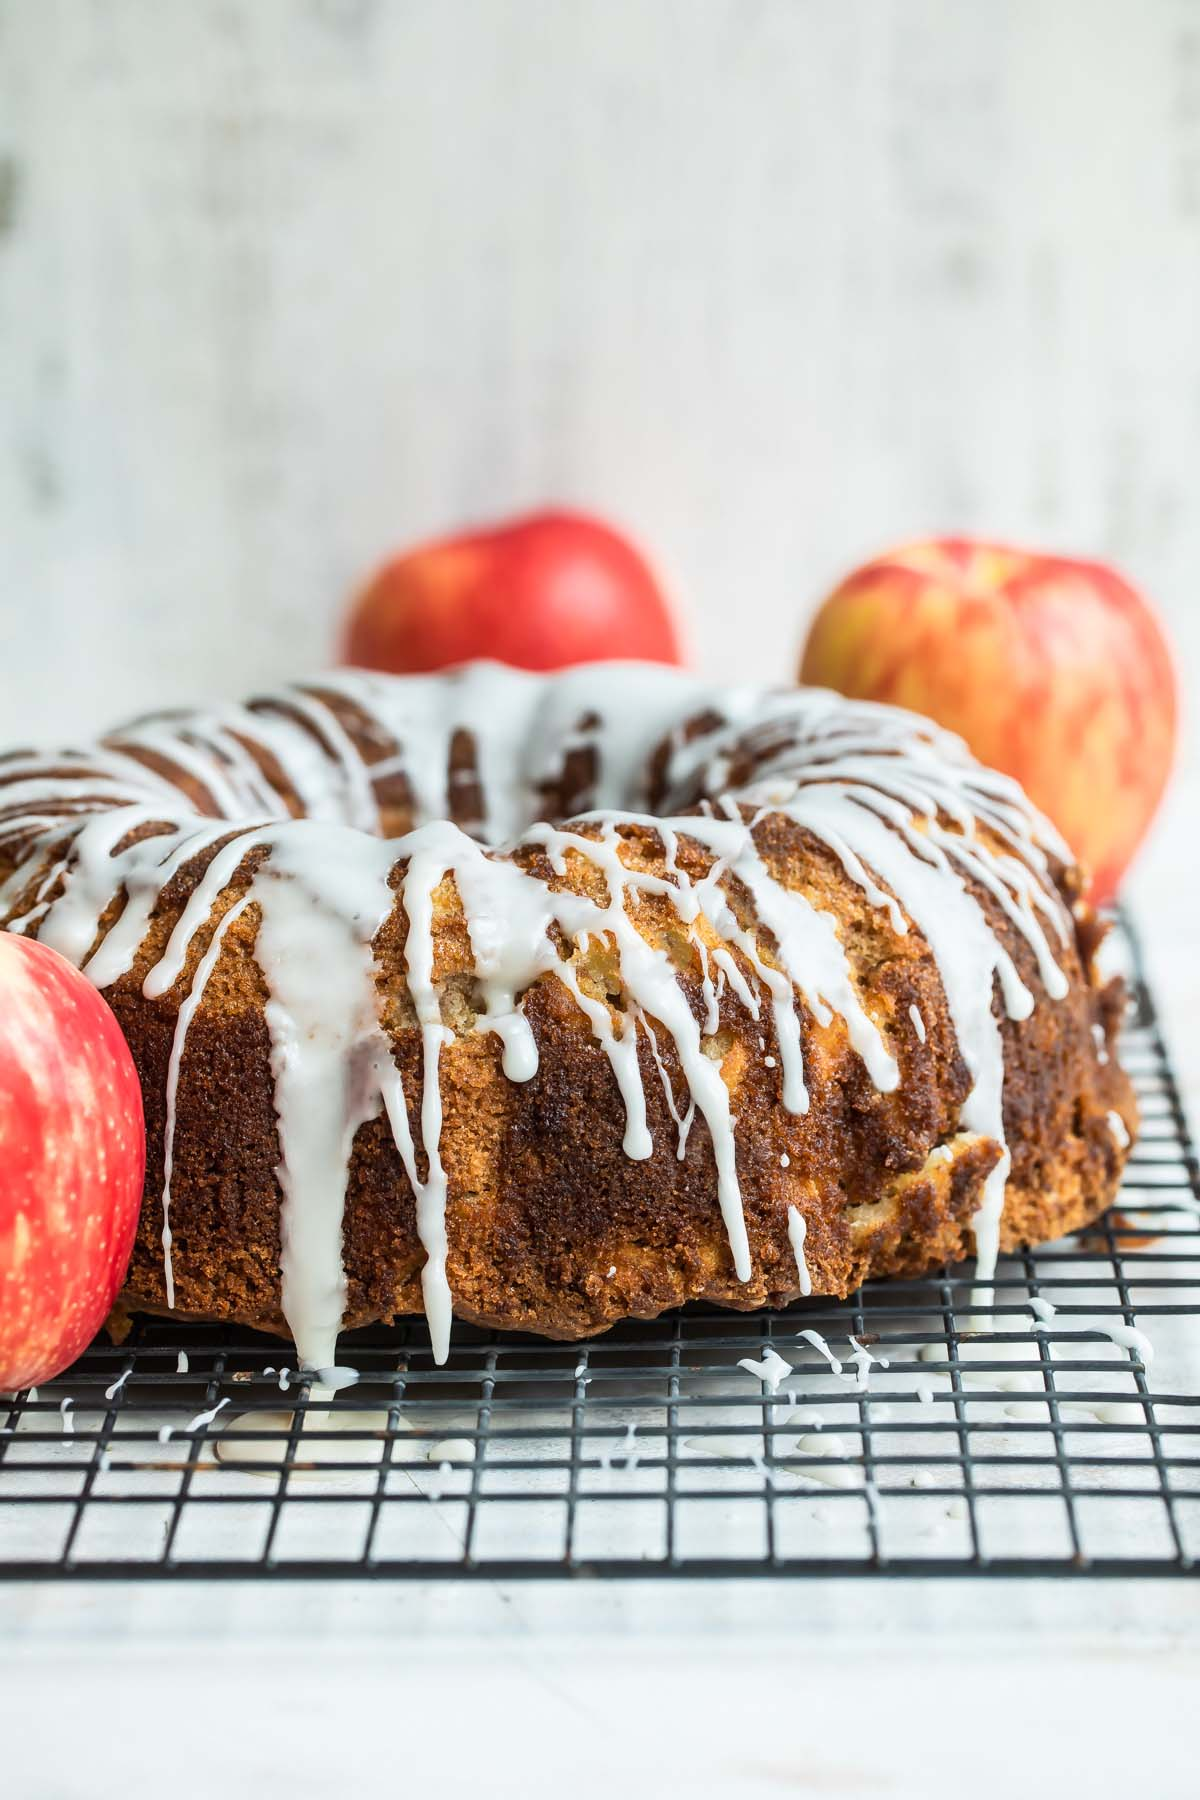 Cinnamon Apple Cake on a cooling rack surrounded by apples.